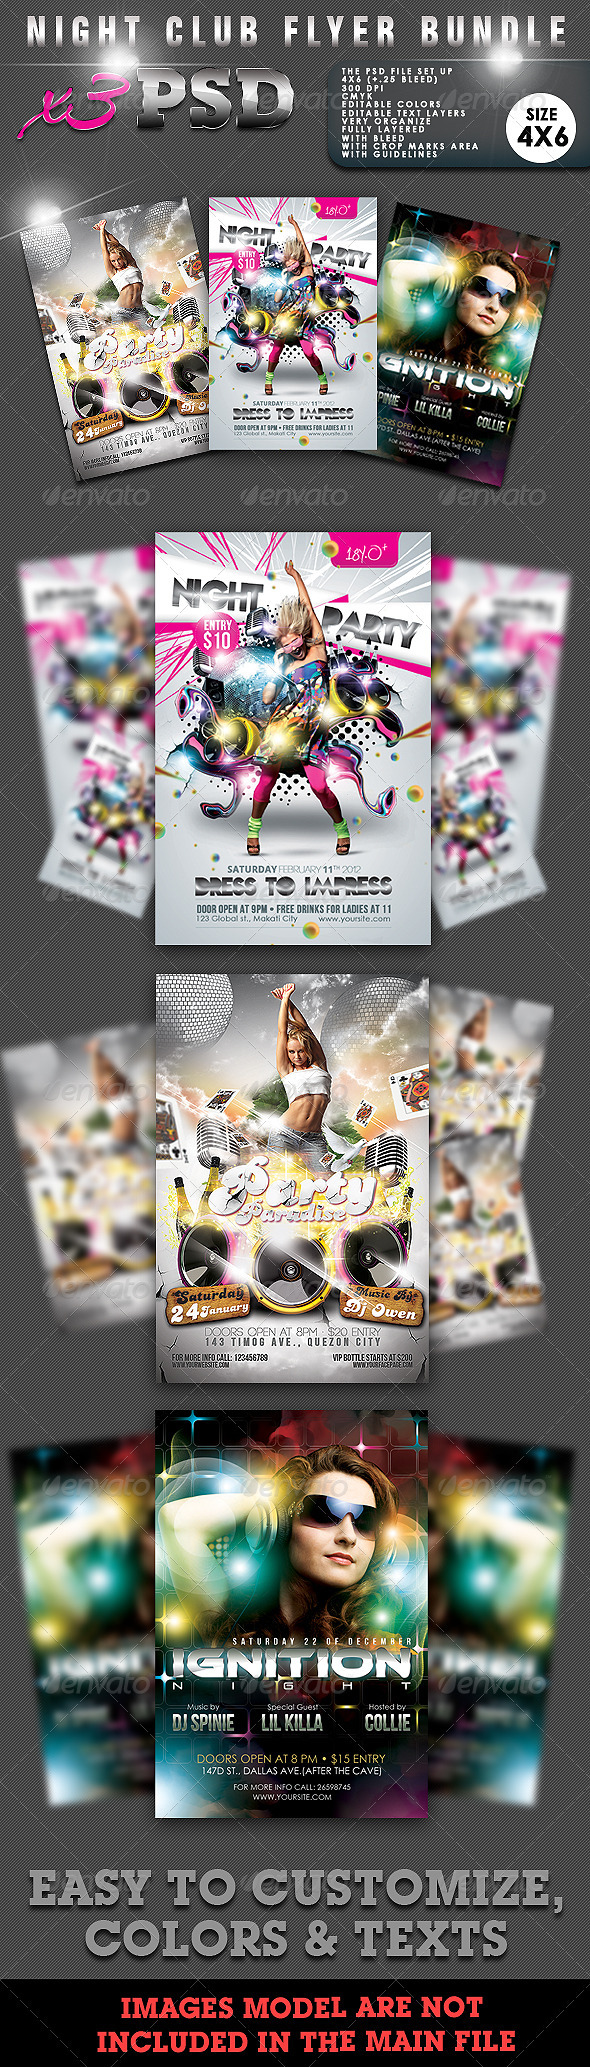 Night Club Flyer Bundle #02 - Clubs & Parties Events